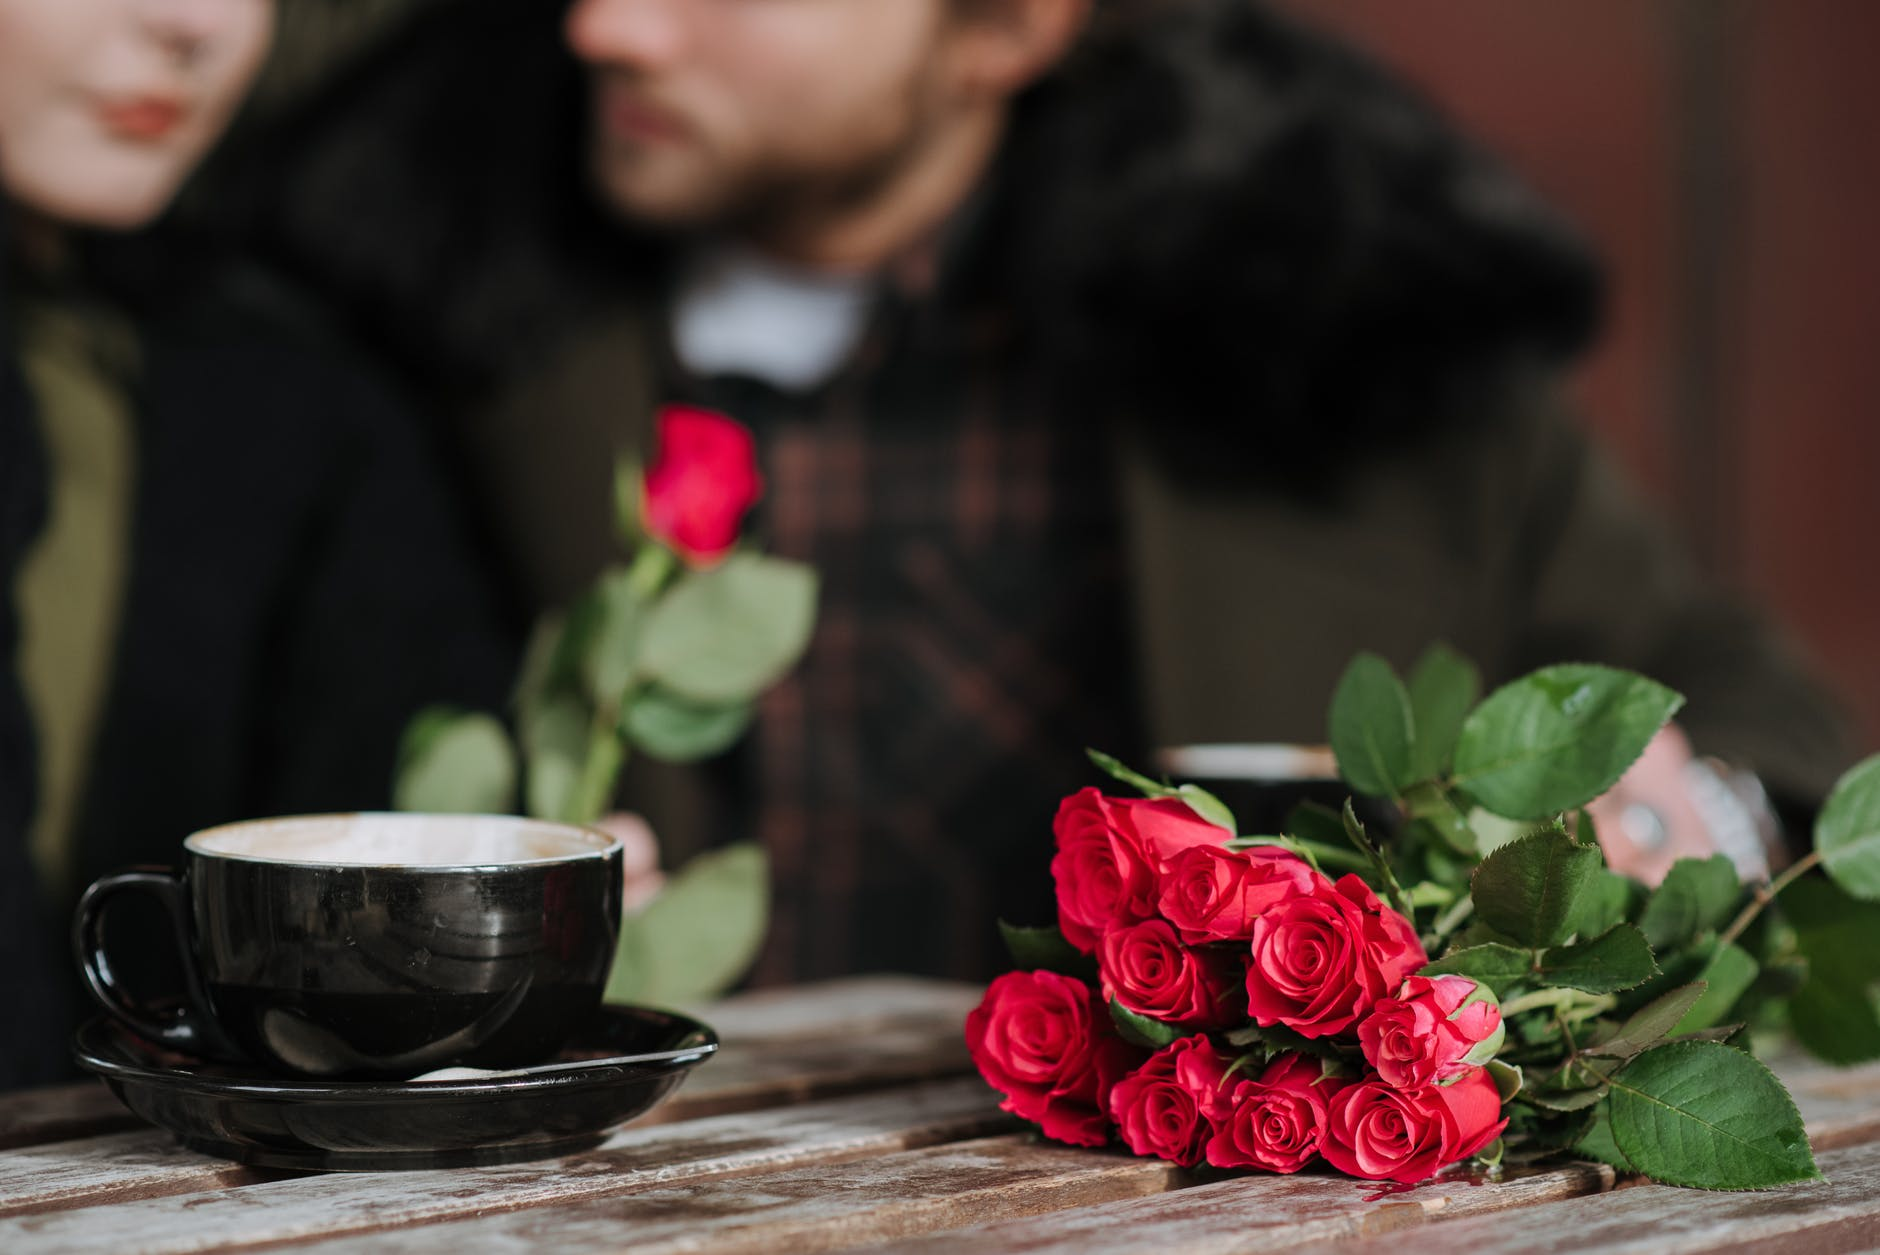 anonymous couple at cafe table with blooming roses and coffee